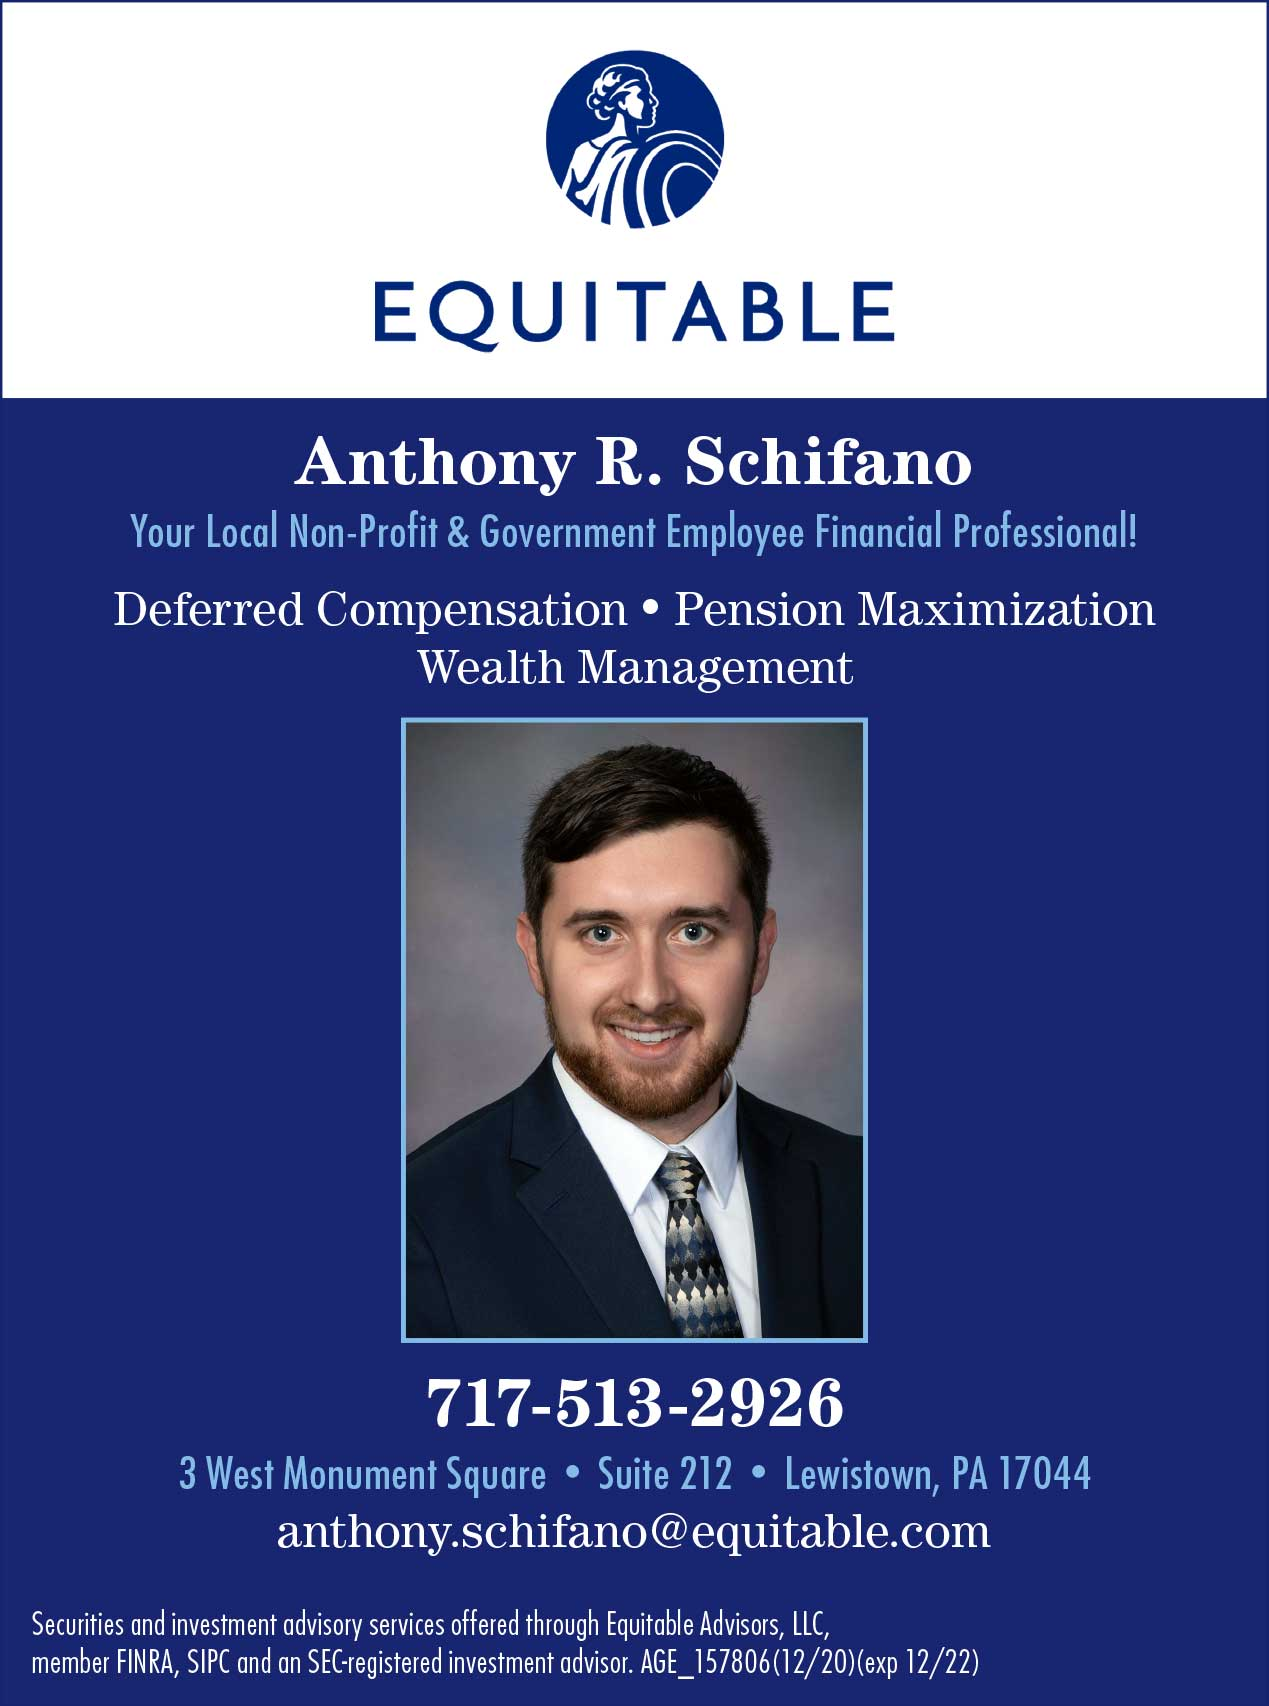 "<center>Anthony R. Schifano Equitable Advisors | <b><a href=""https://equitable.com"" target=""_blank"" rel=""noopener noreferrer"">CLICK HERE to view the website</a></b></center>"